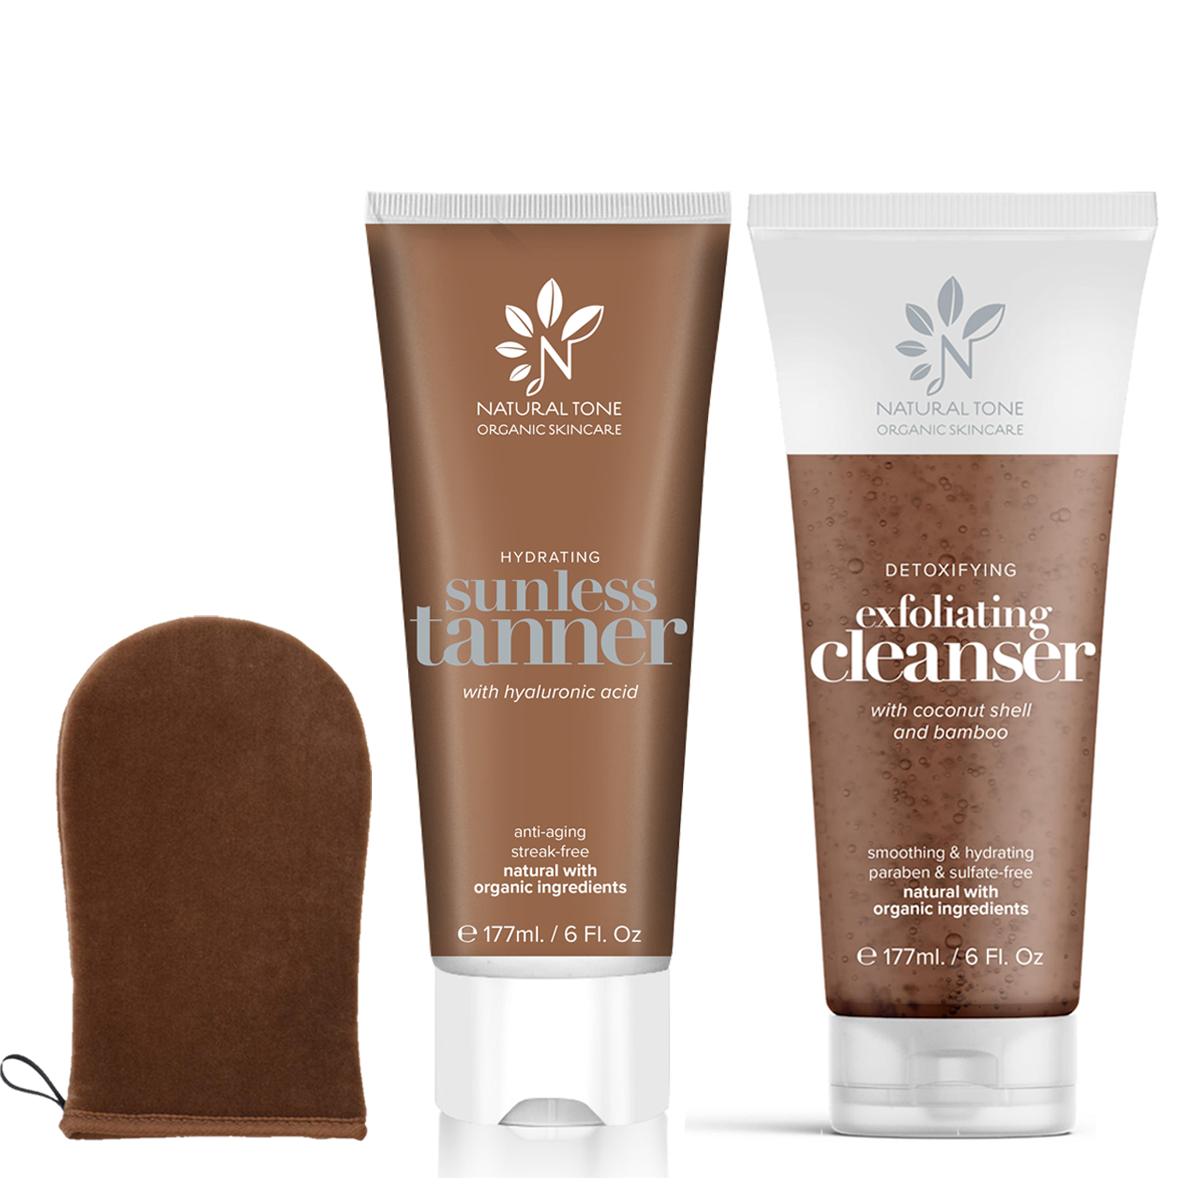 Total Sunless Tanning Pack - Natural Tone Organic Skincare